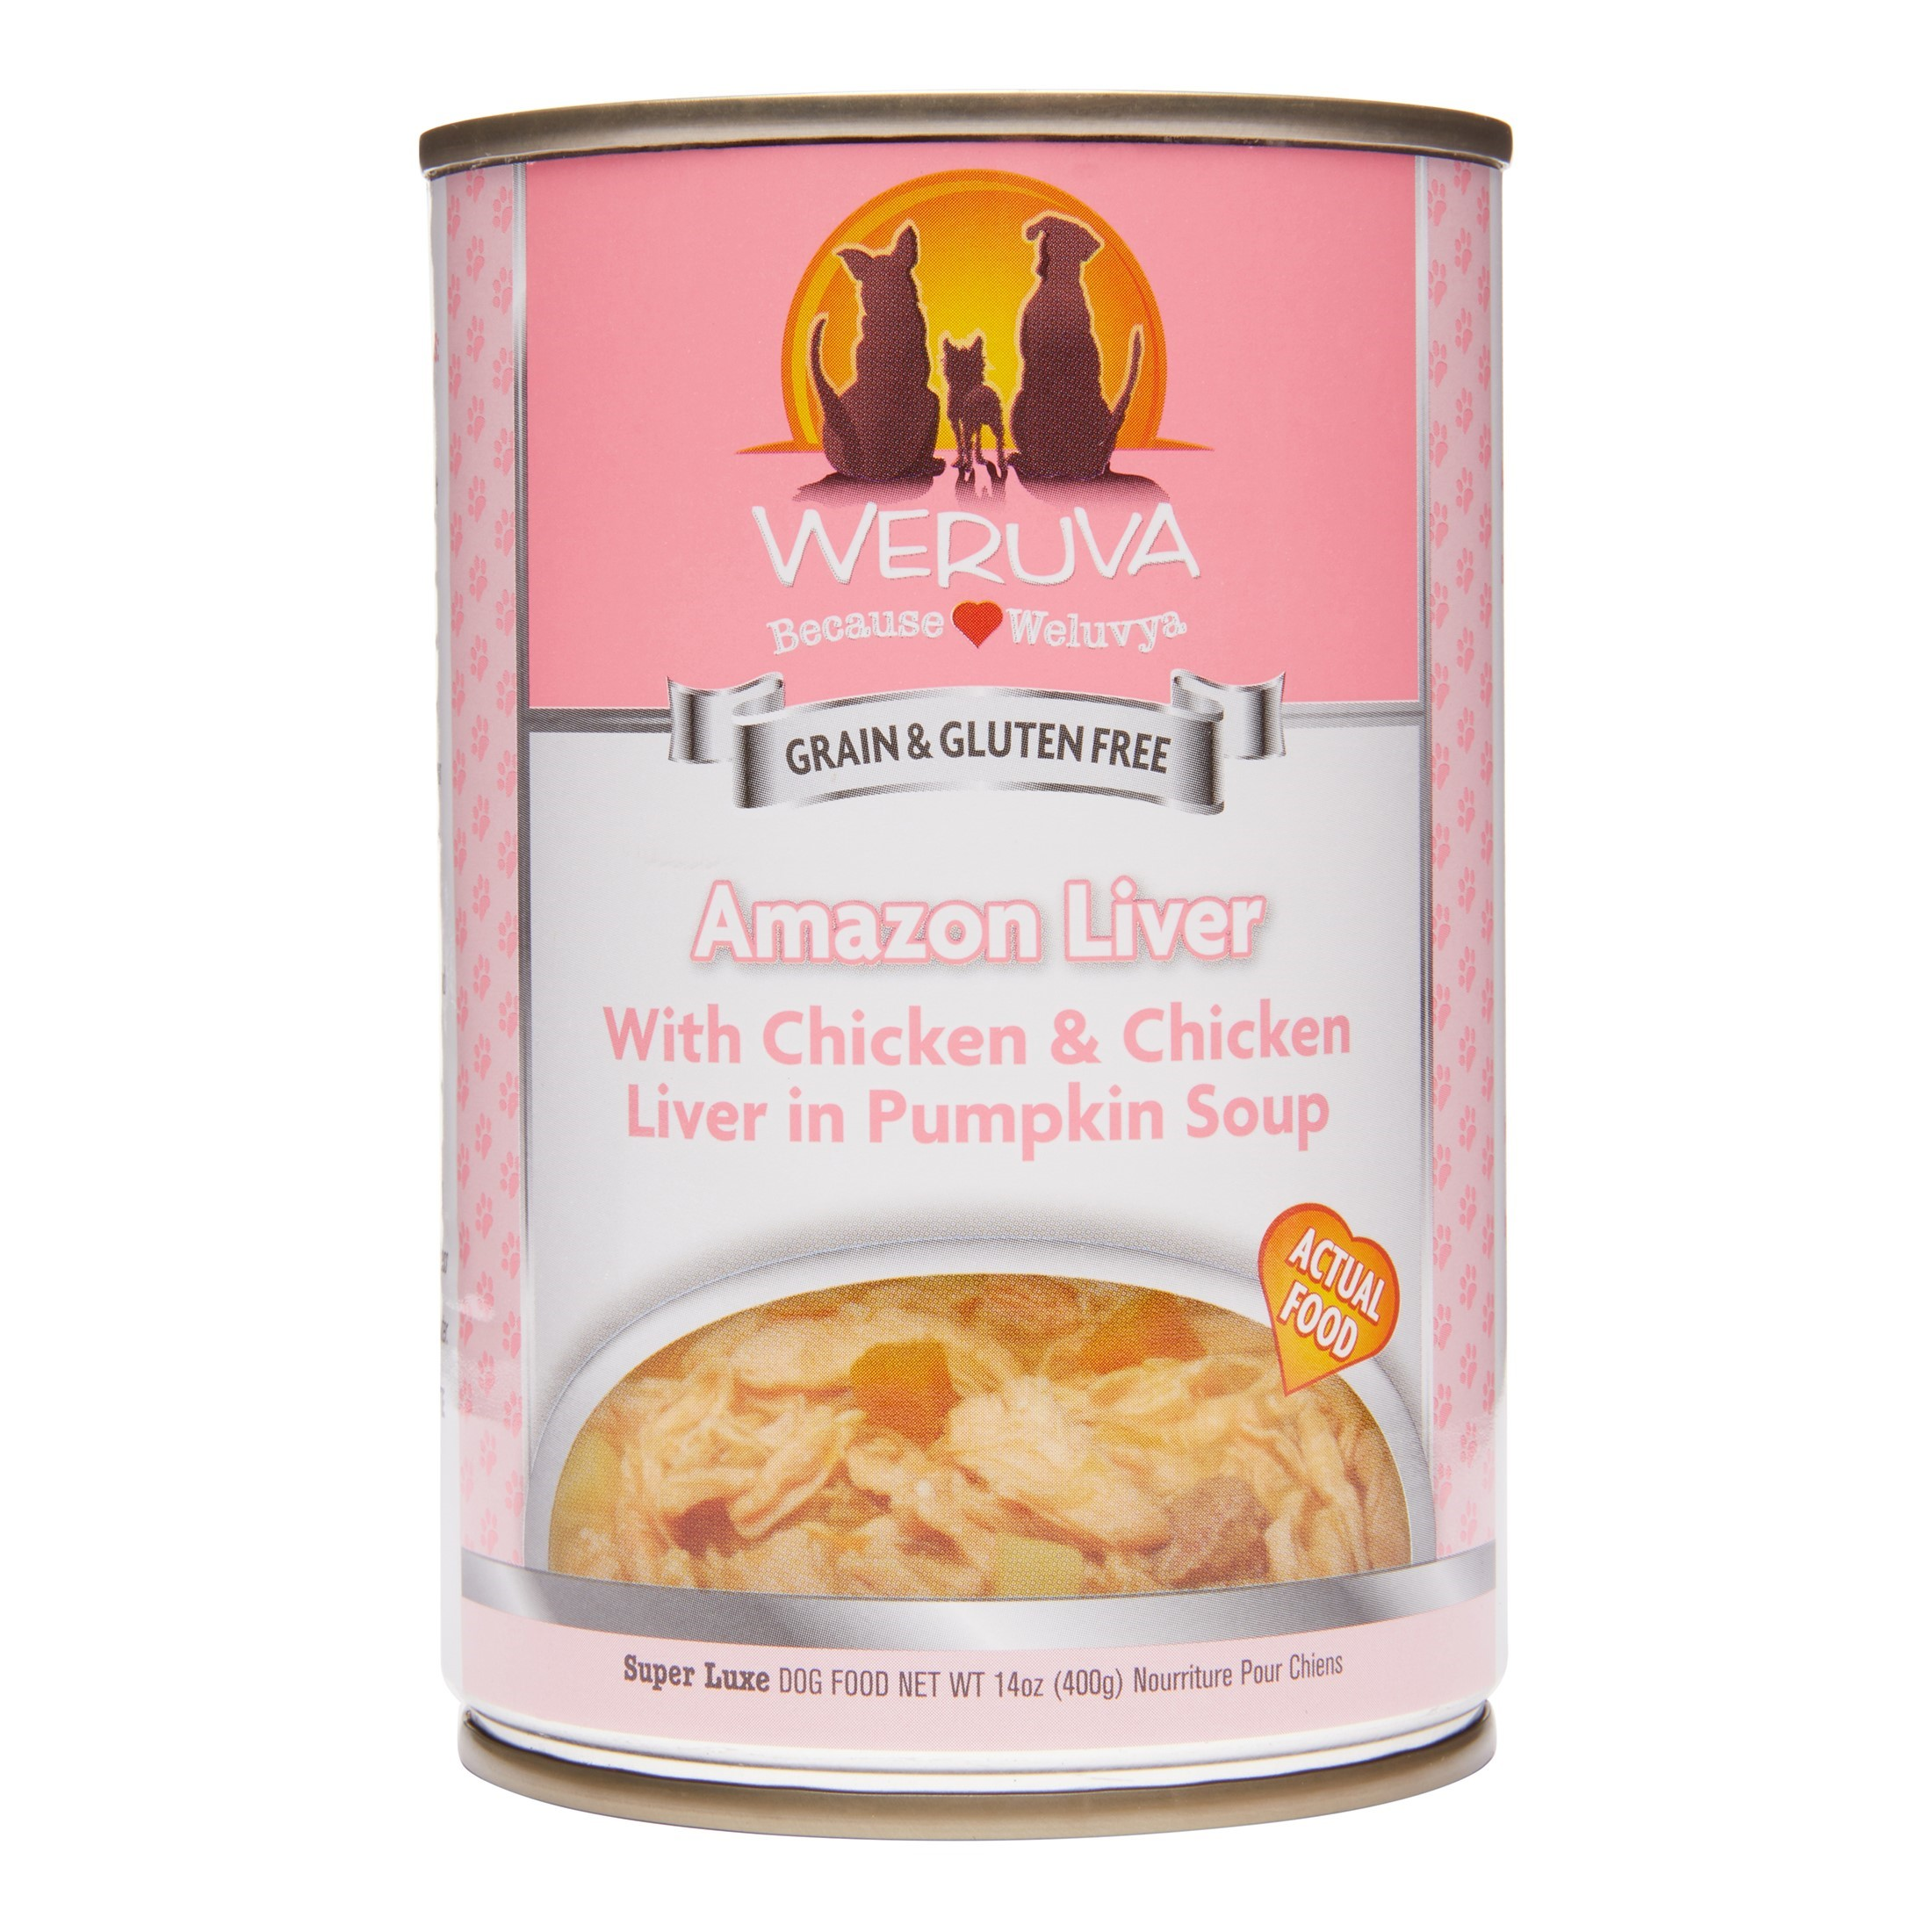 Weruva Human Style Grain-Free Amazon Liver with Chicken & Chicken Liver in Pumpkin Soup Wet Dog Food, 14 Oz. Cans (24 Pack)